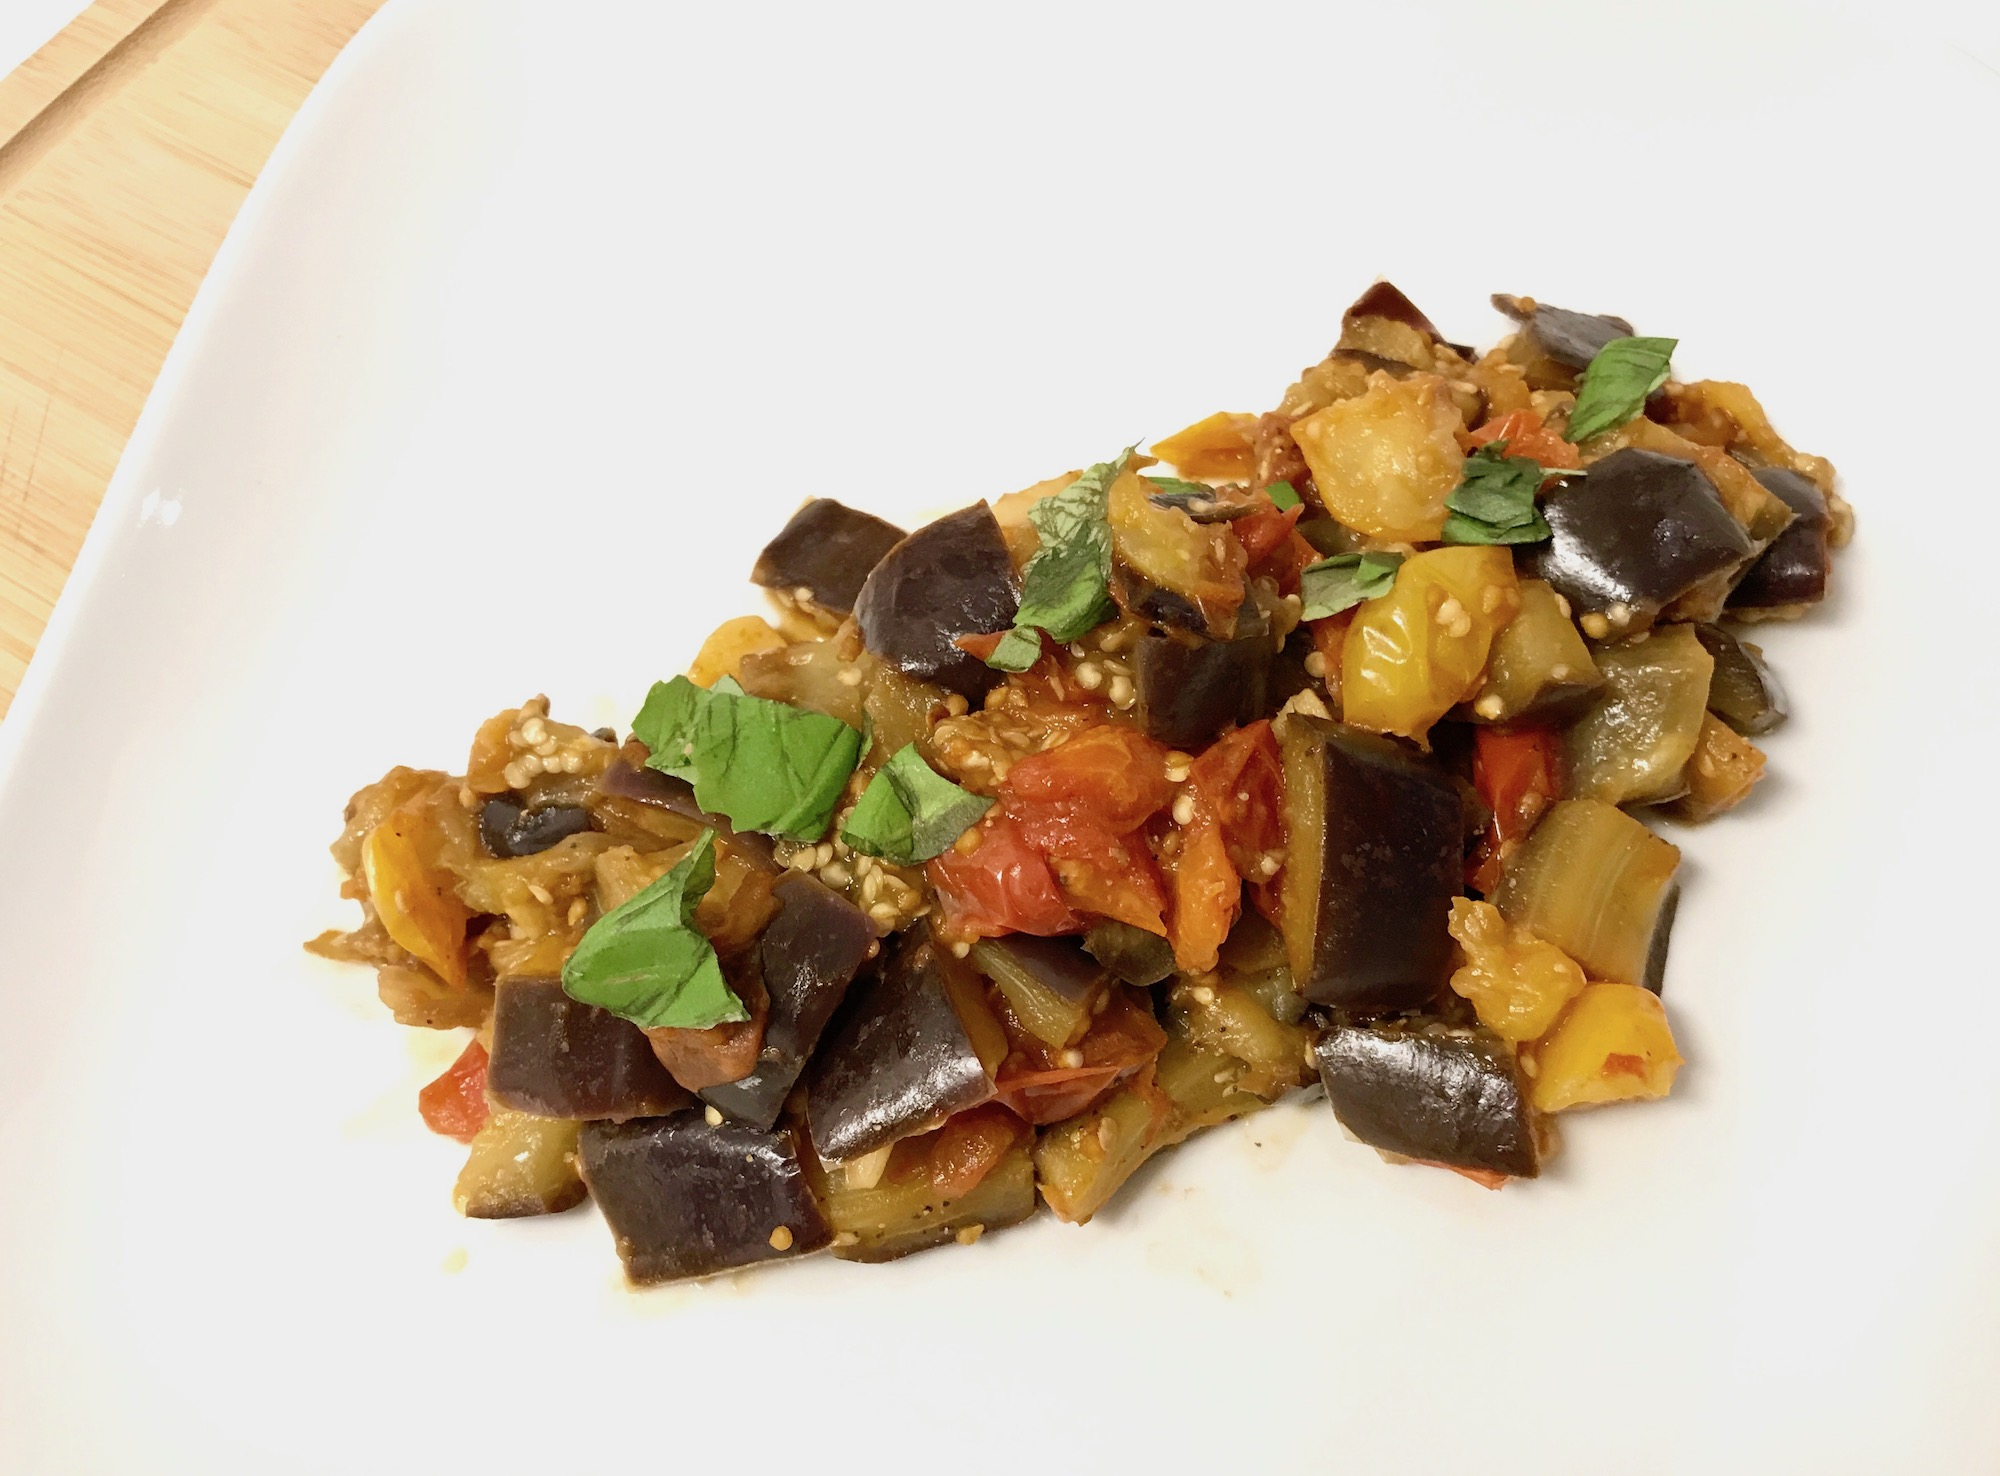 Eggplant with Sautéed Tomato and Garlic